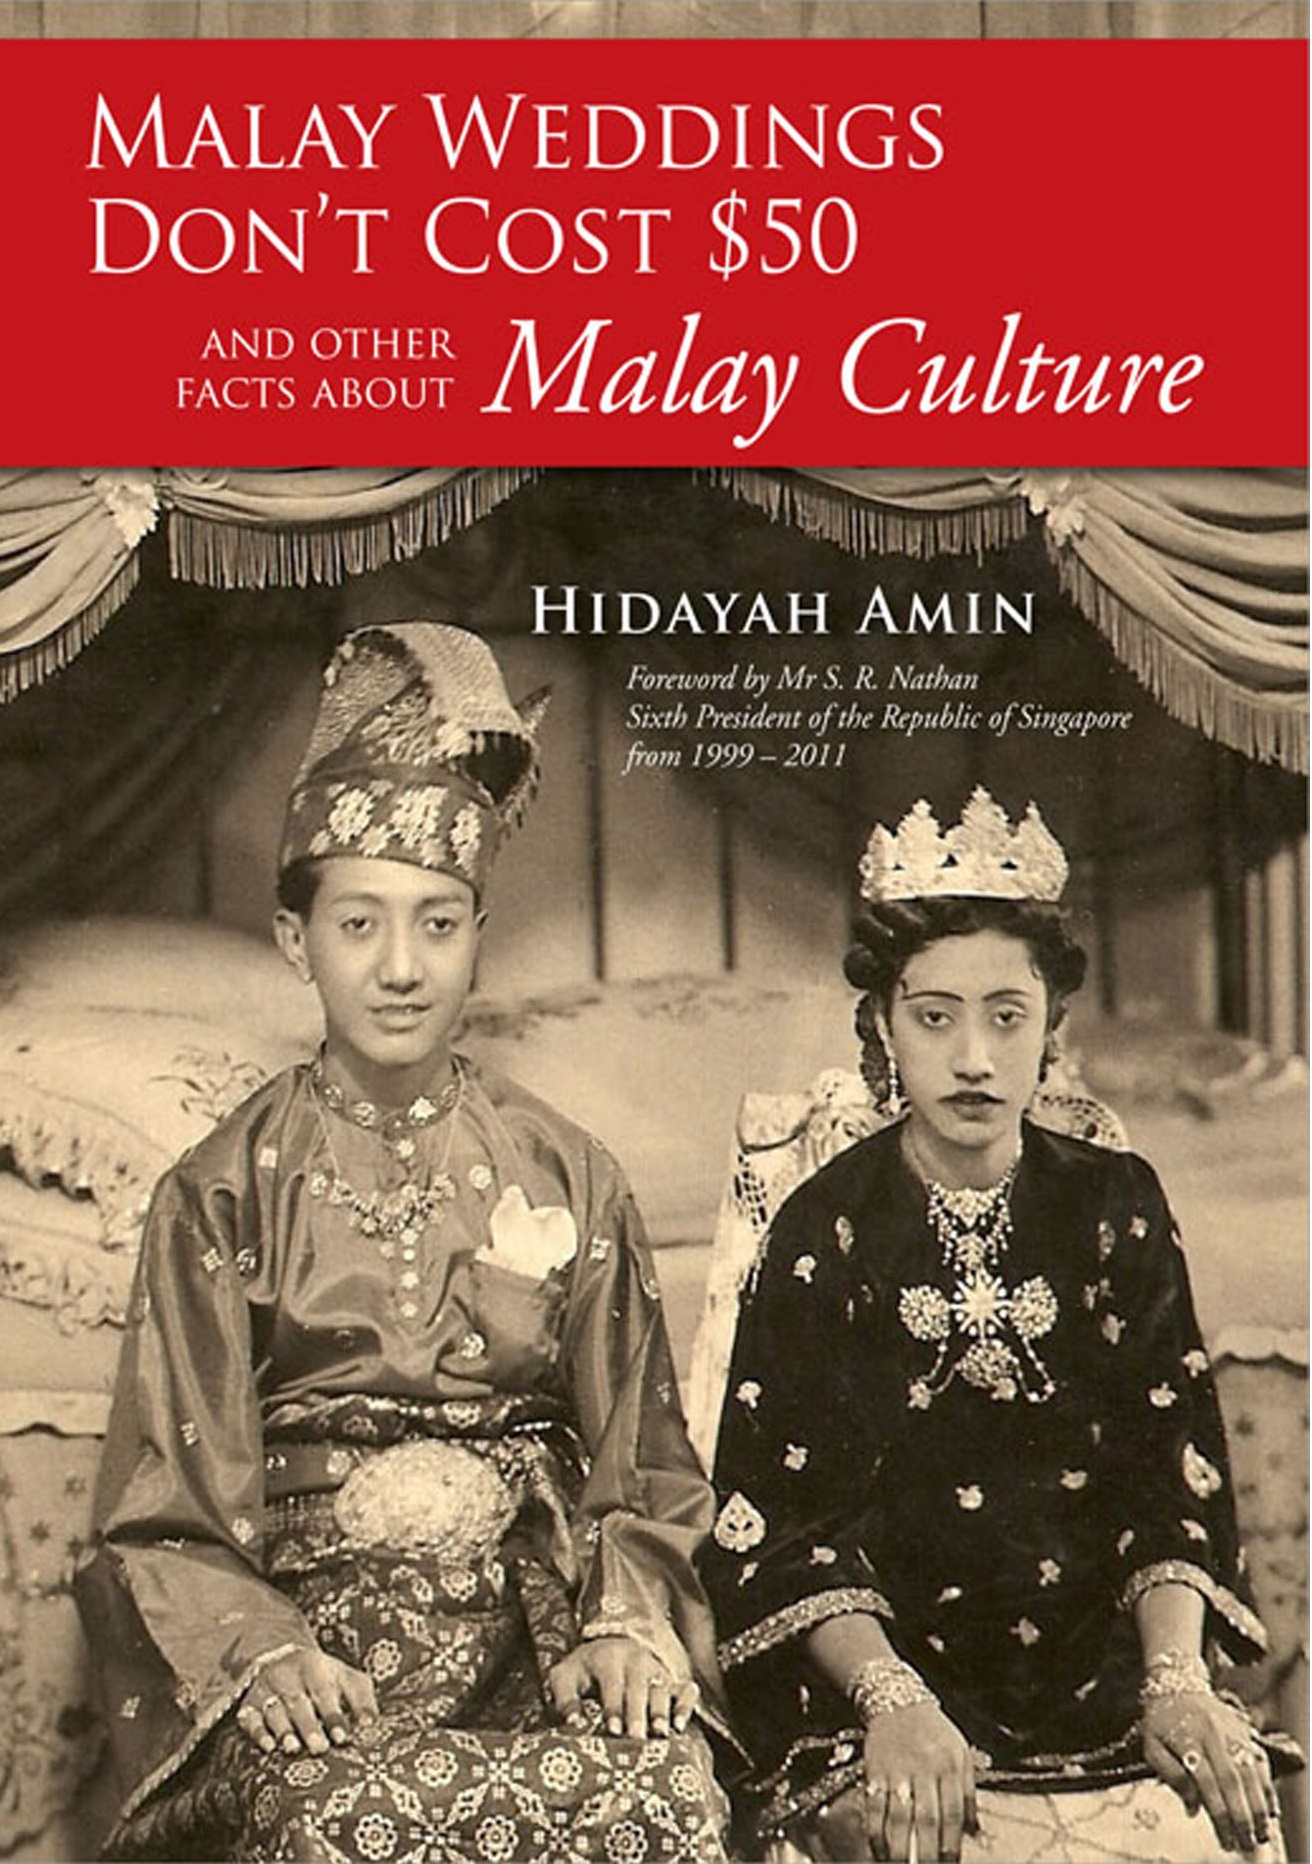 Malay Weddings Don't Cost $50 And Other Facts About Malay Culture